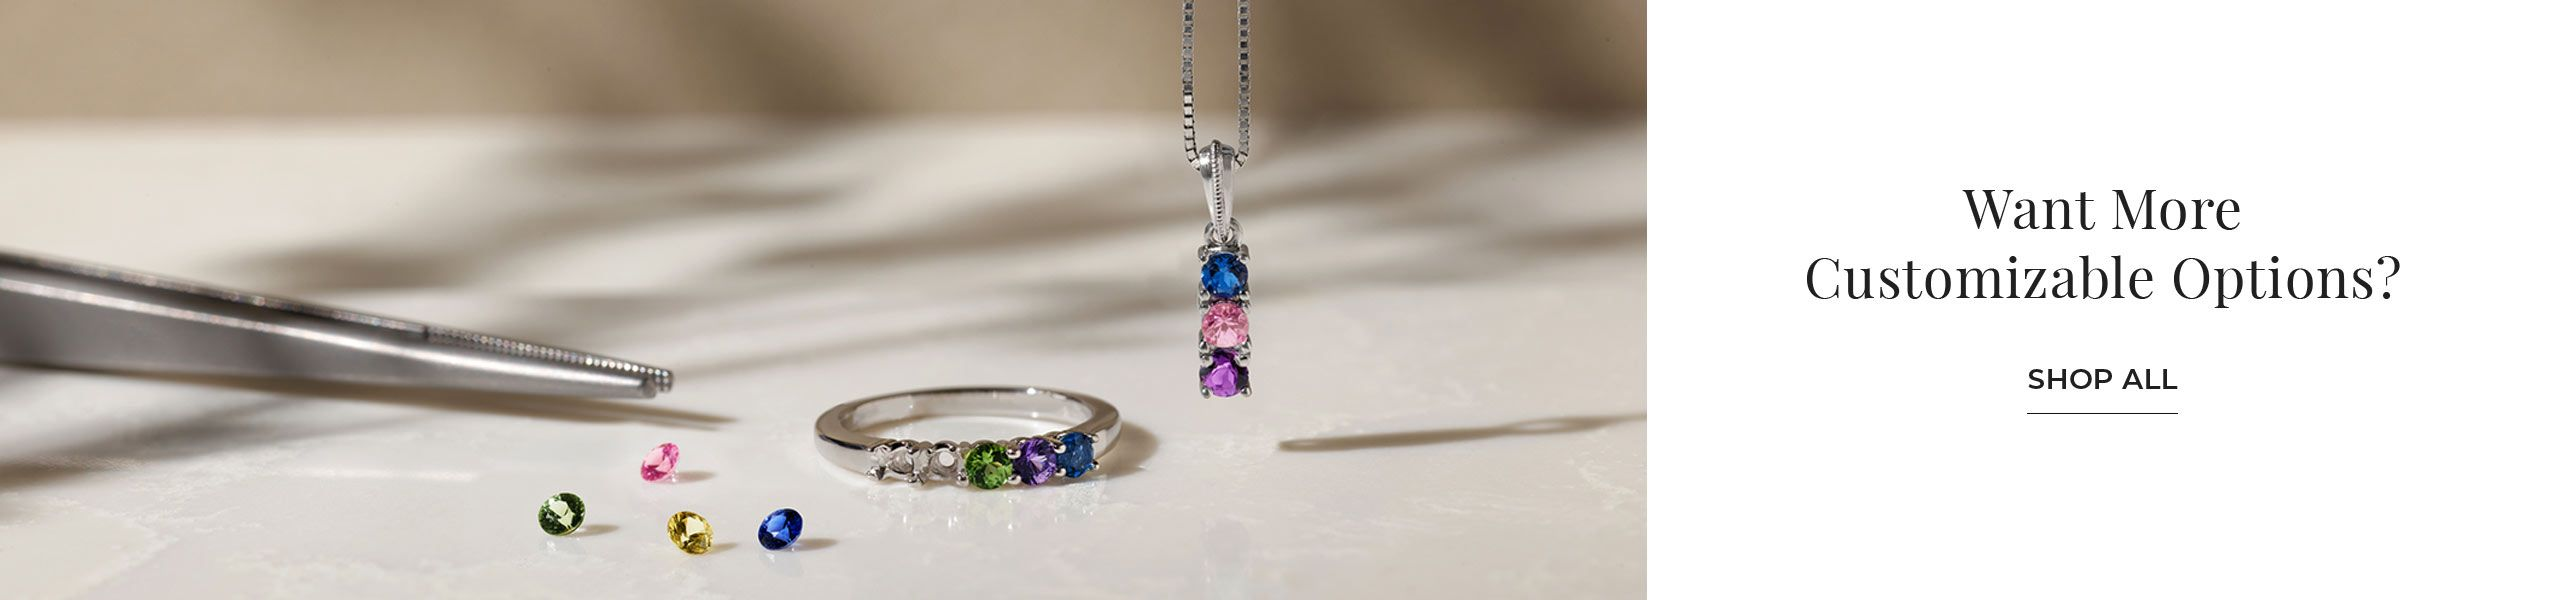 A family collection ring and pendant with loose stones